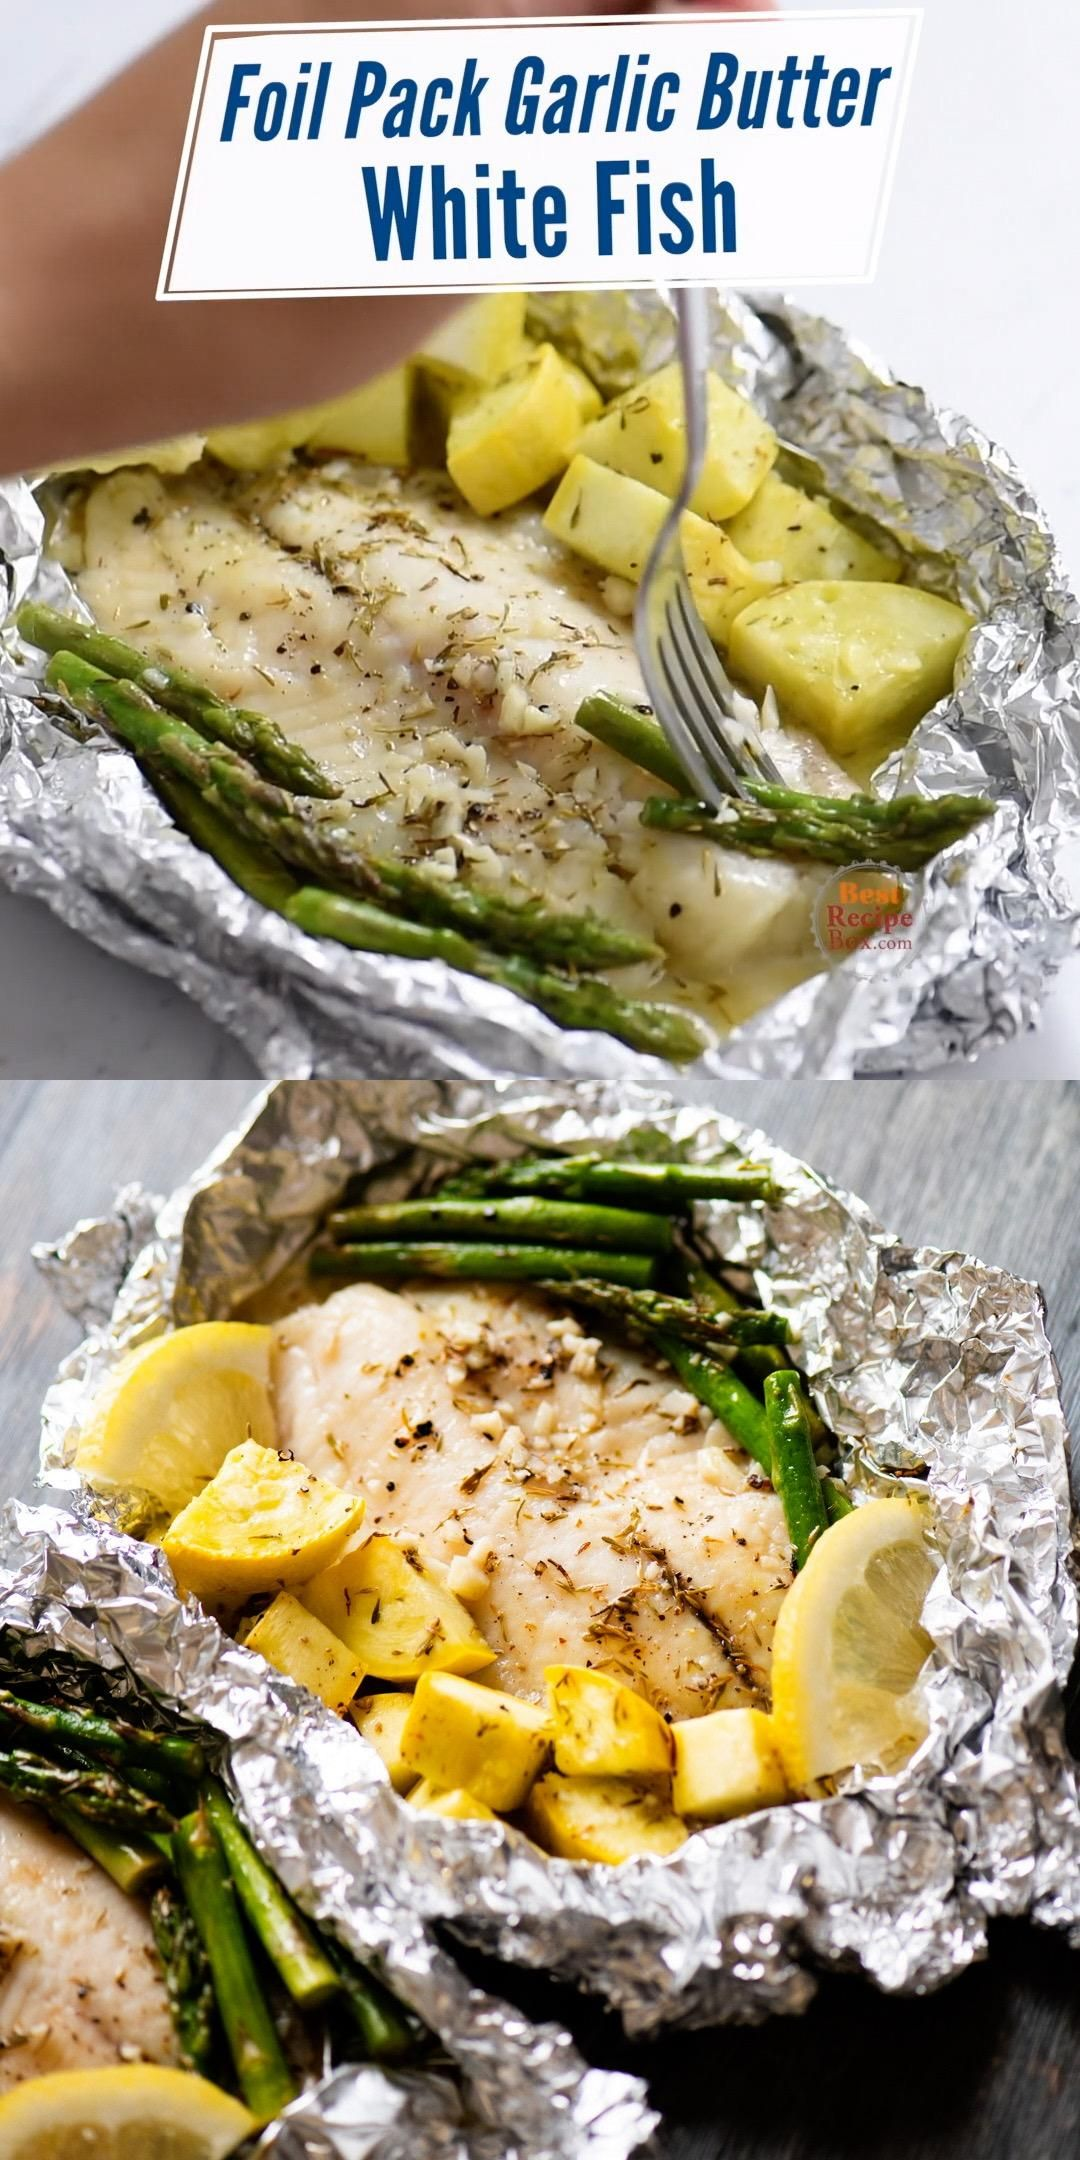 Our healthy white fish recipe with is tender, flavorful and delicious. All cooked in an easy foil pack wrap for easy cleanup too!